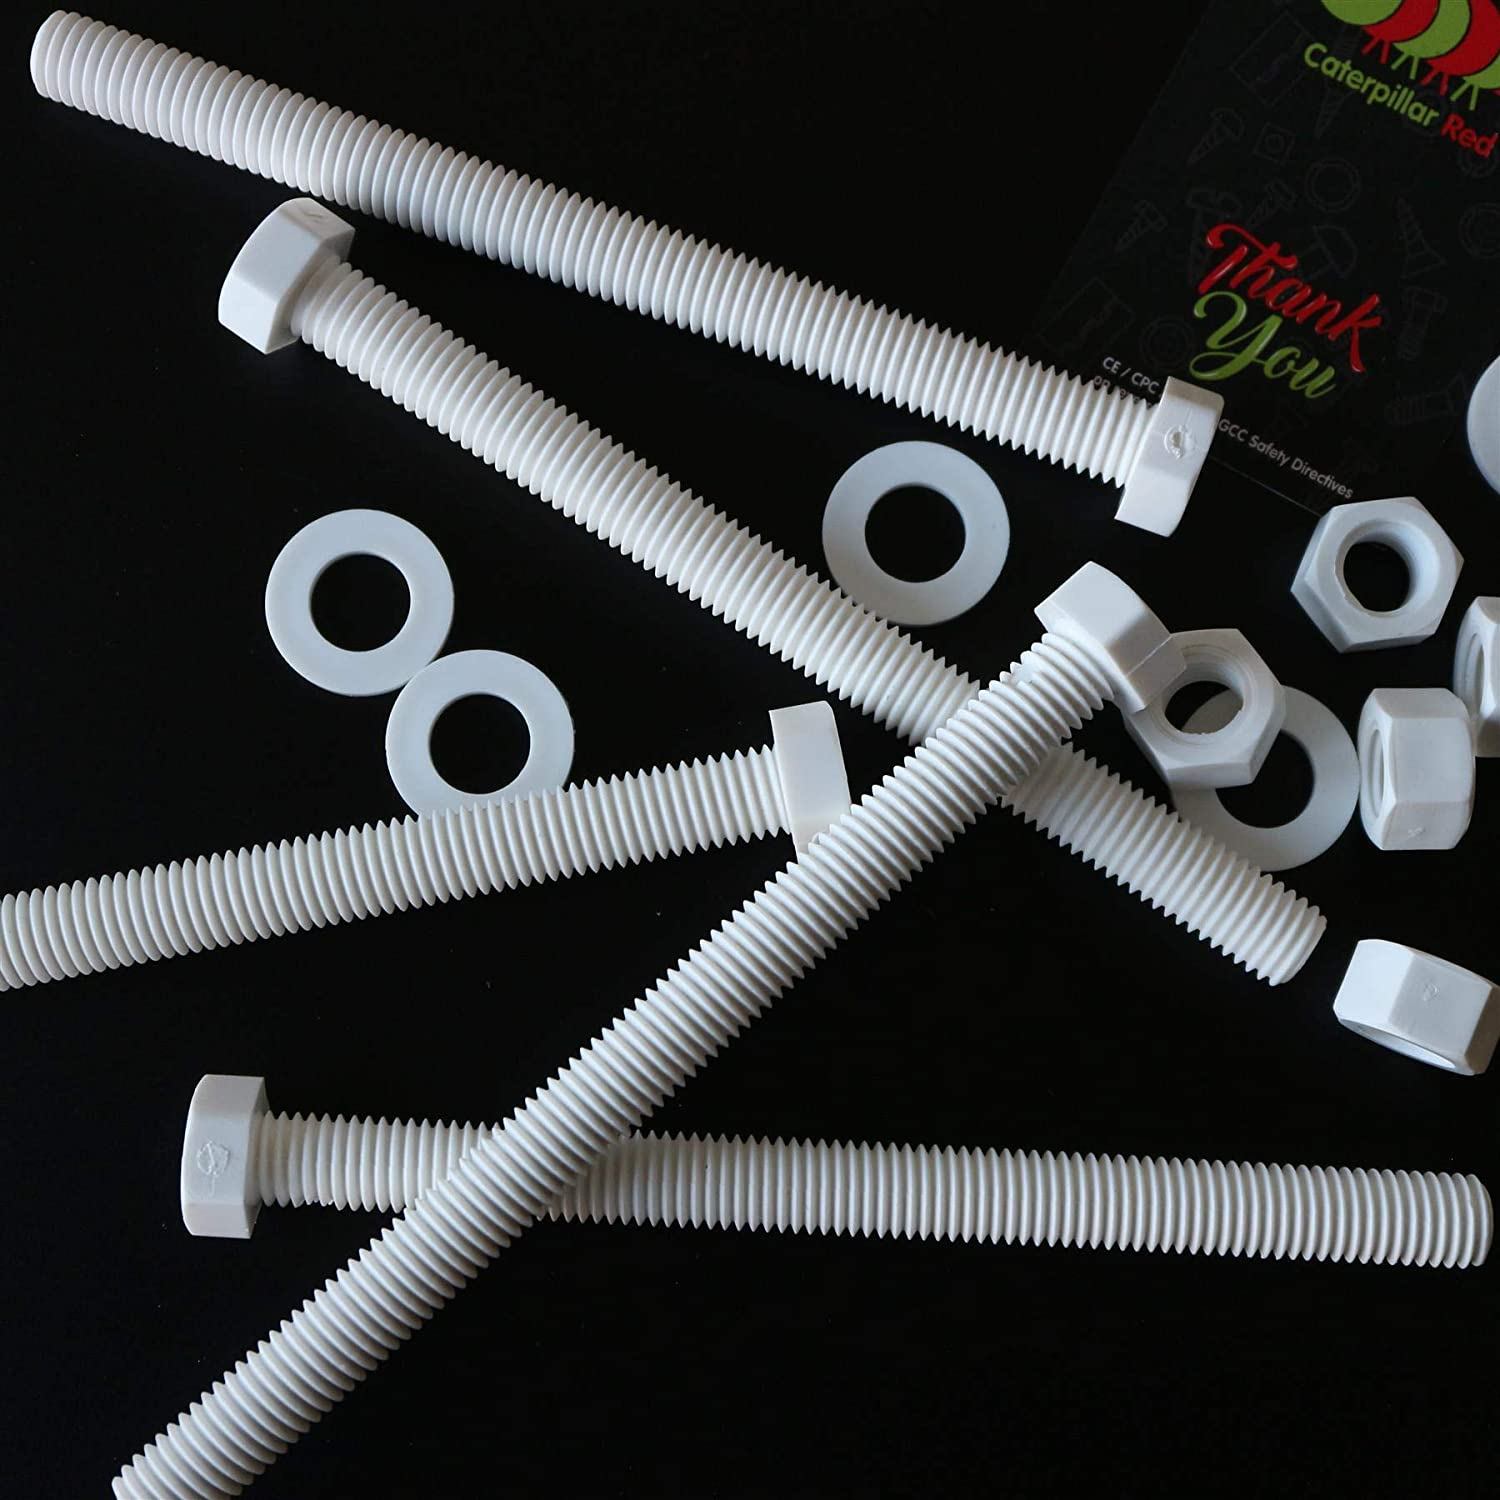 Acrylic Plastic Nuts and Bolts 5X White Hex Head Screws Polypropylene Washers Water Resistant M12 x 150mm Strong. Chemical Resistant Anti-Corrosion PP